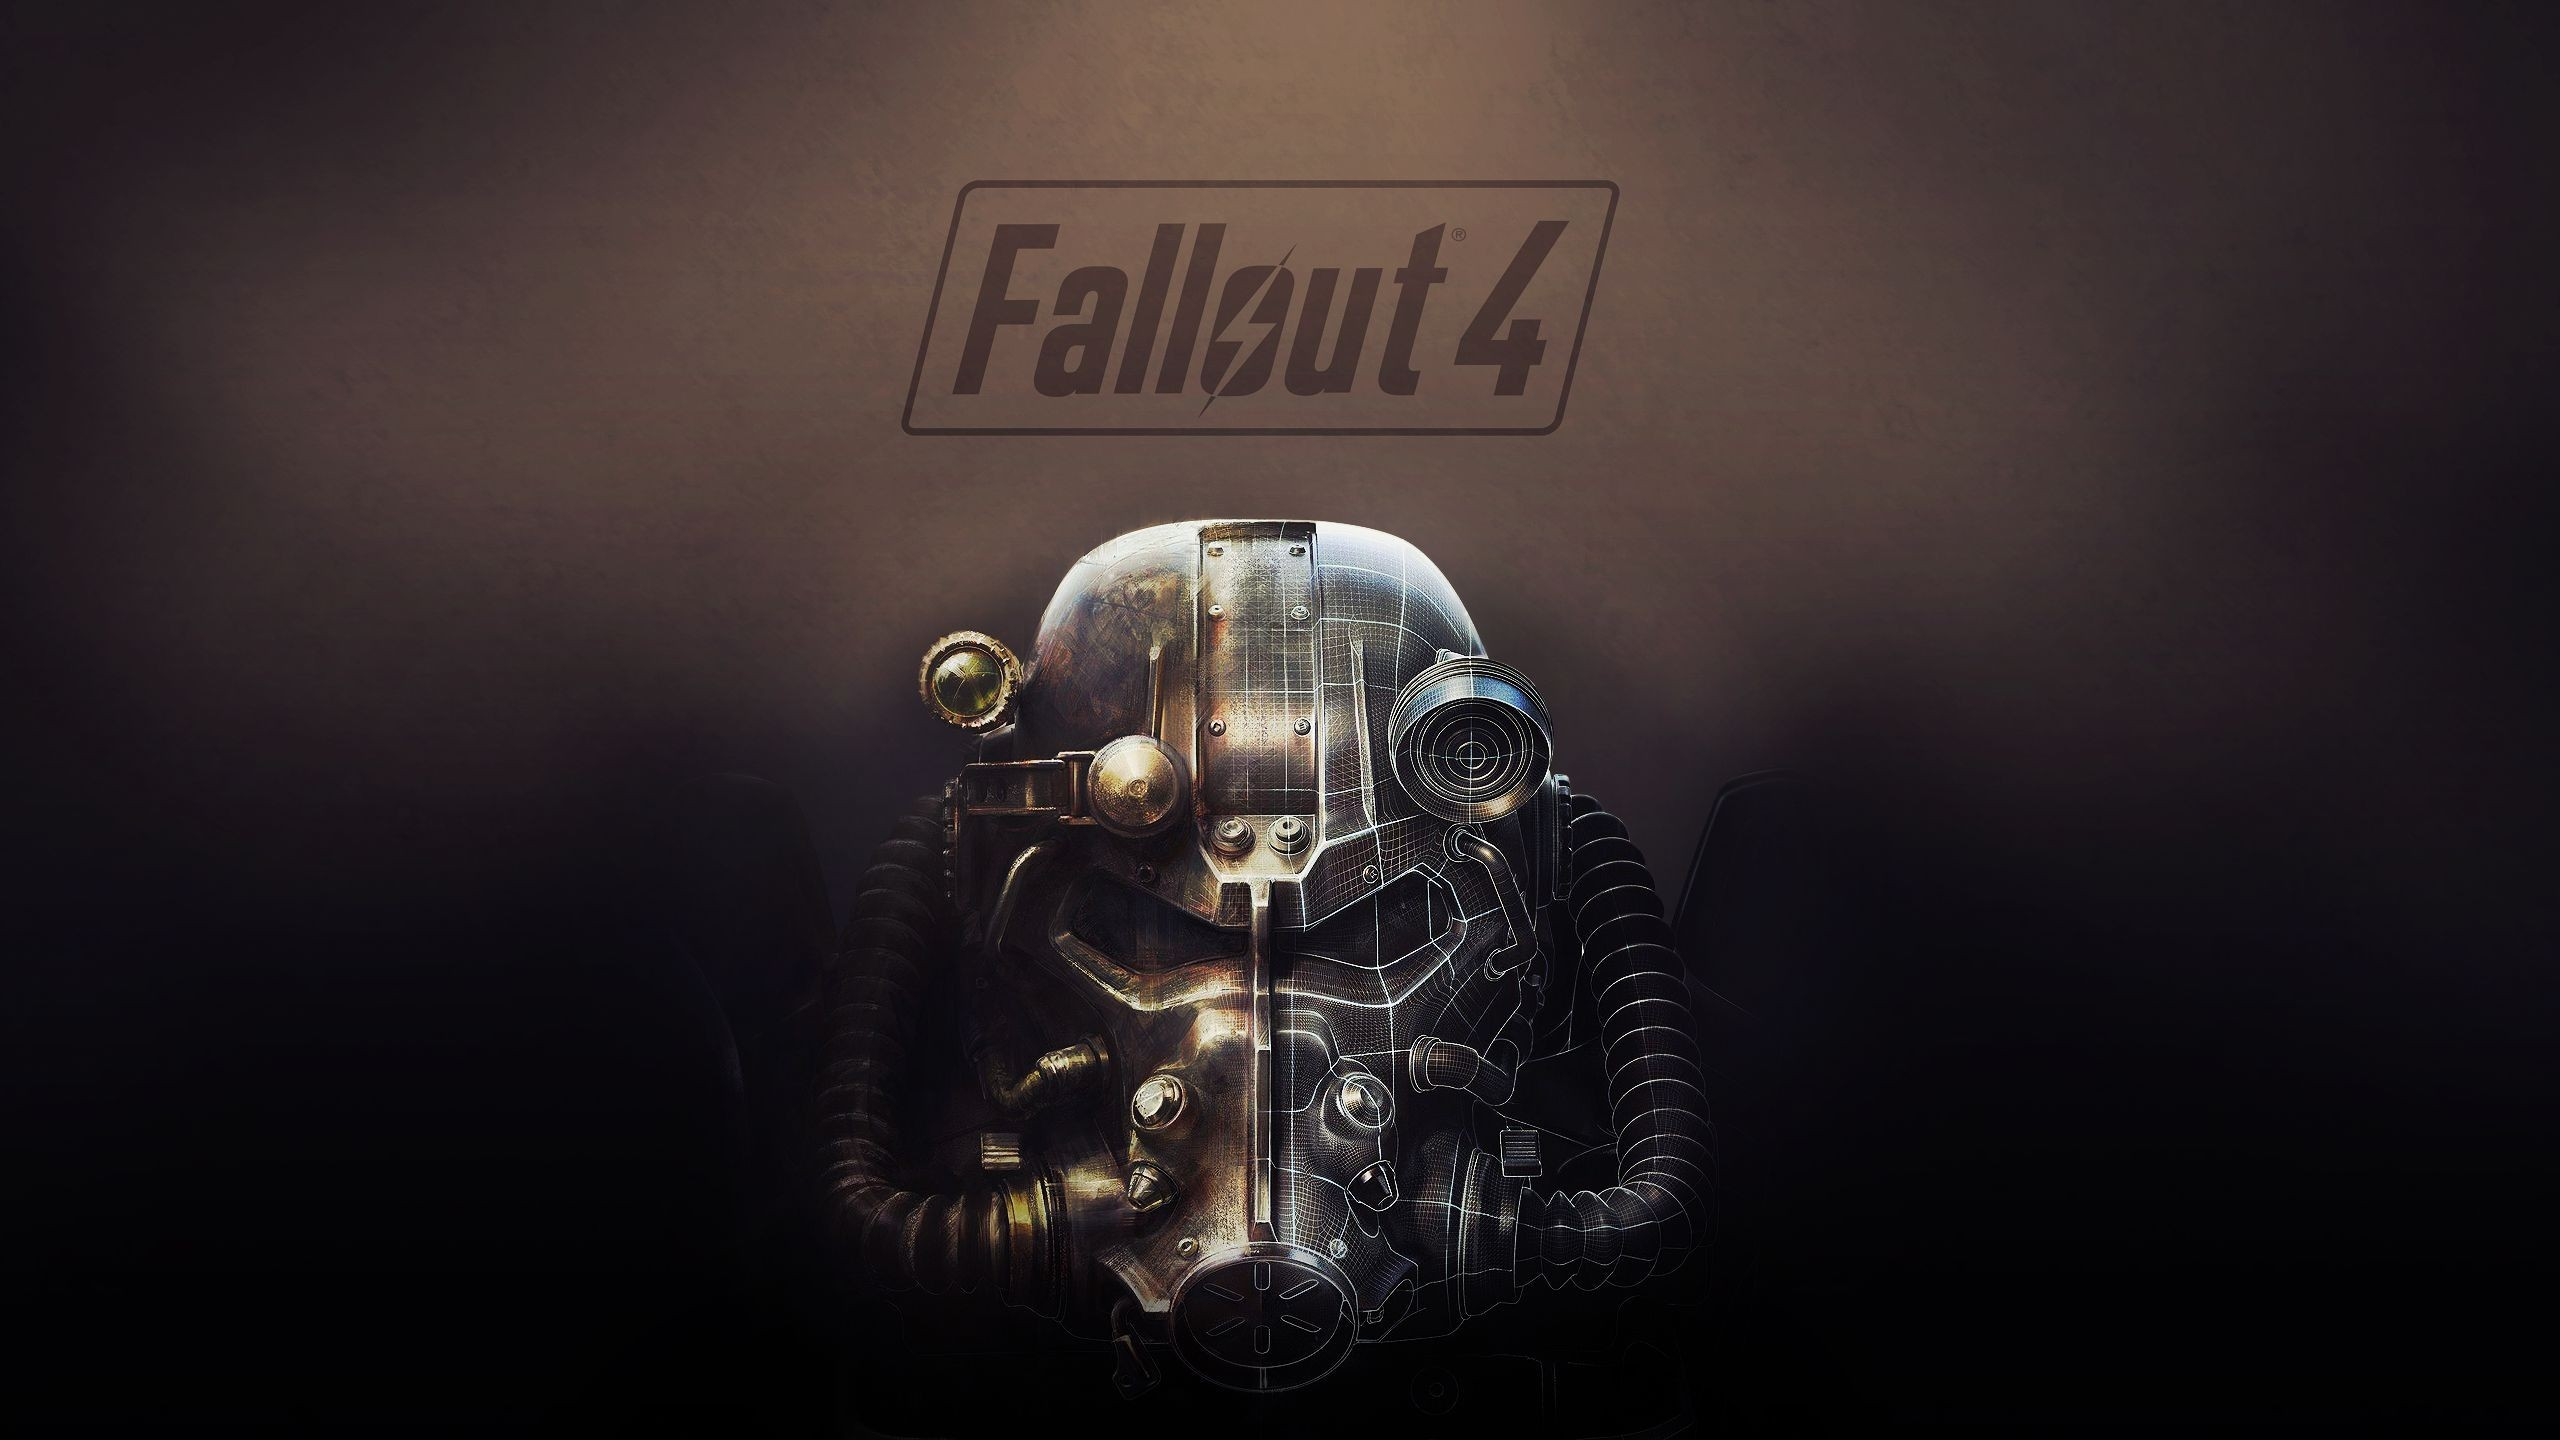 Fallout 4 [2560×1440] (wallpapers.wallhaven.cc)